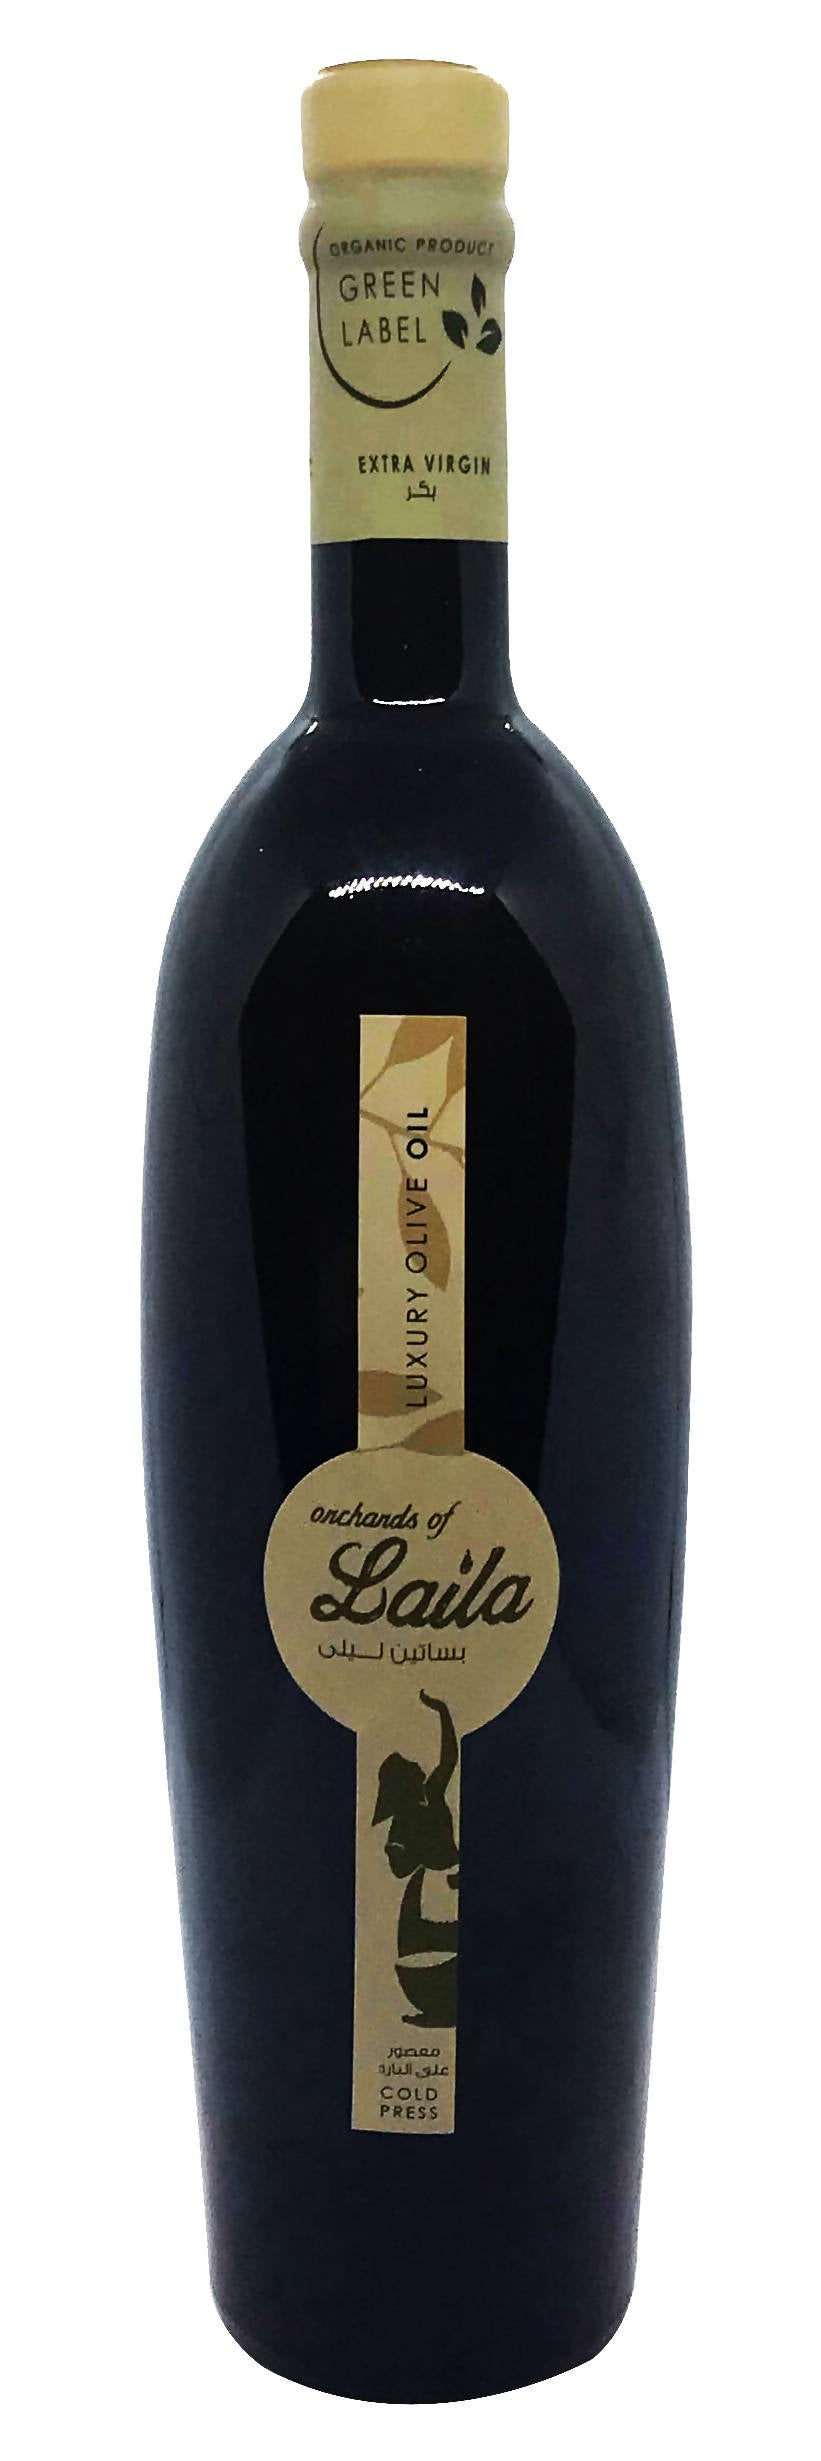 Orchards of Laila's Green Label - 750ml Organic Extra Virgin Olive Oil, Cultivar : Souriana.